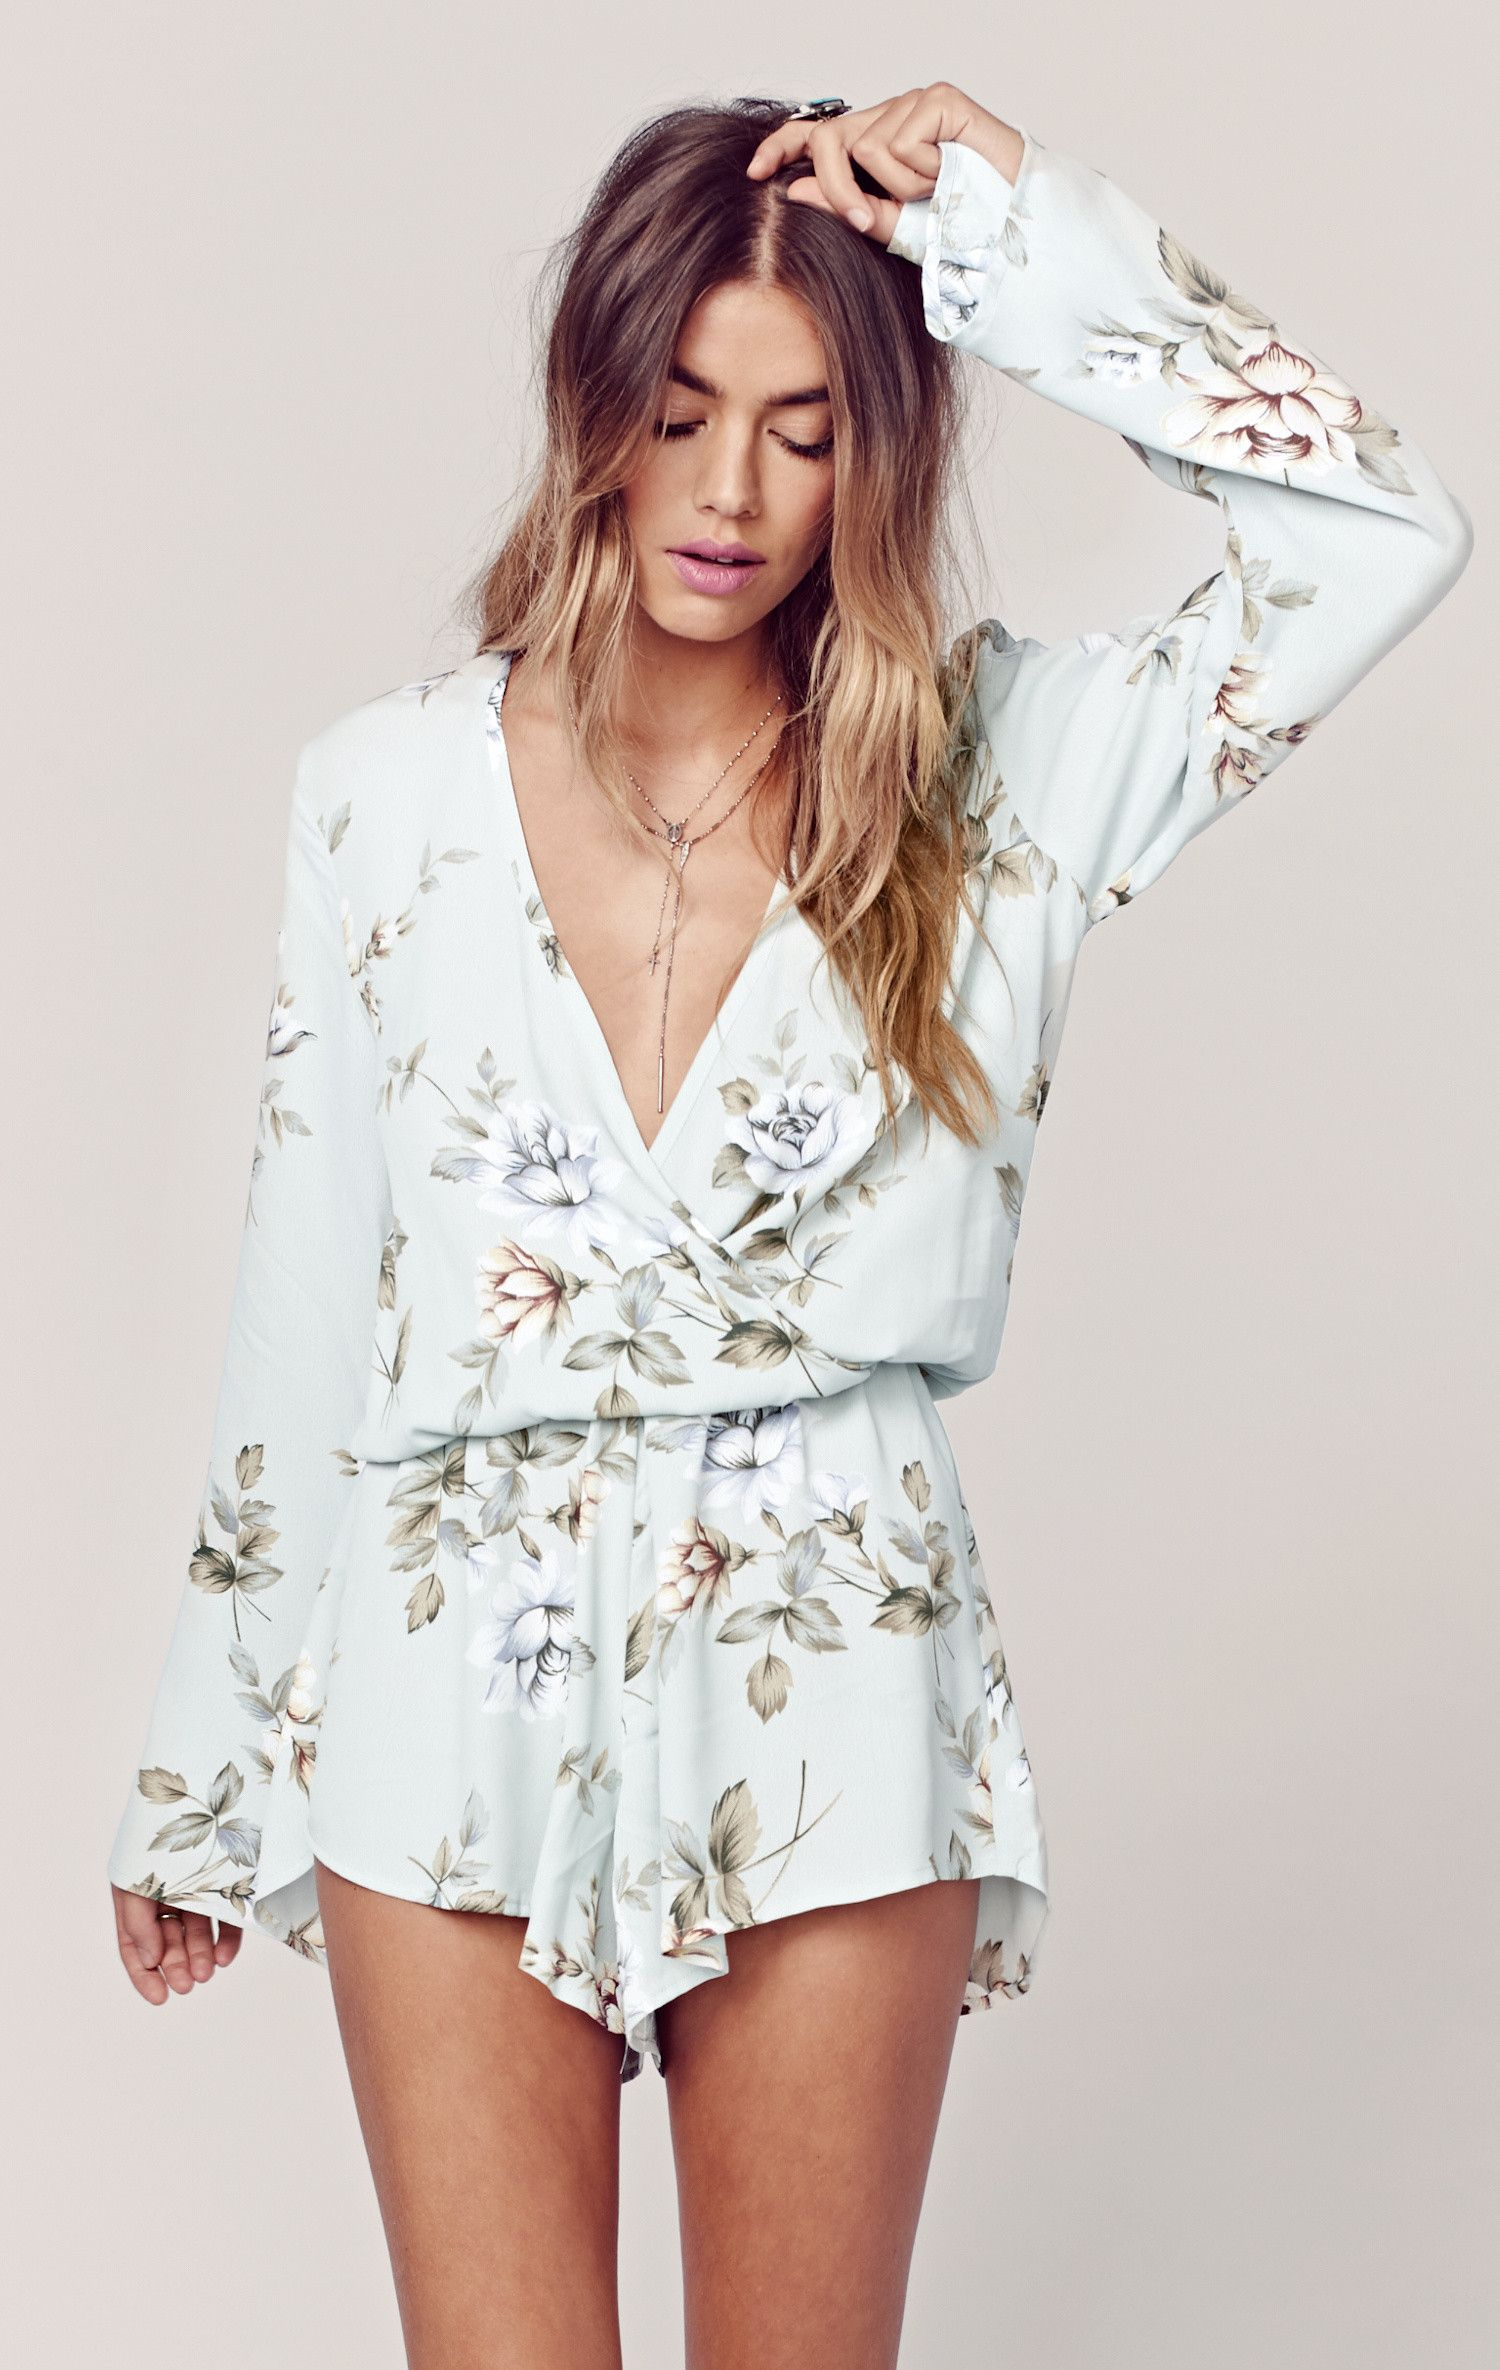 573a497c62c The New Boho Sleeve Romper by Blue Life is part Wild   Free and part Boho  with an updated print for the new season. Features long bell sleeves with a  deep ...